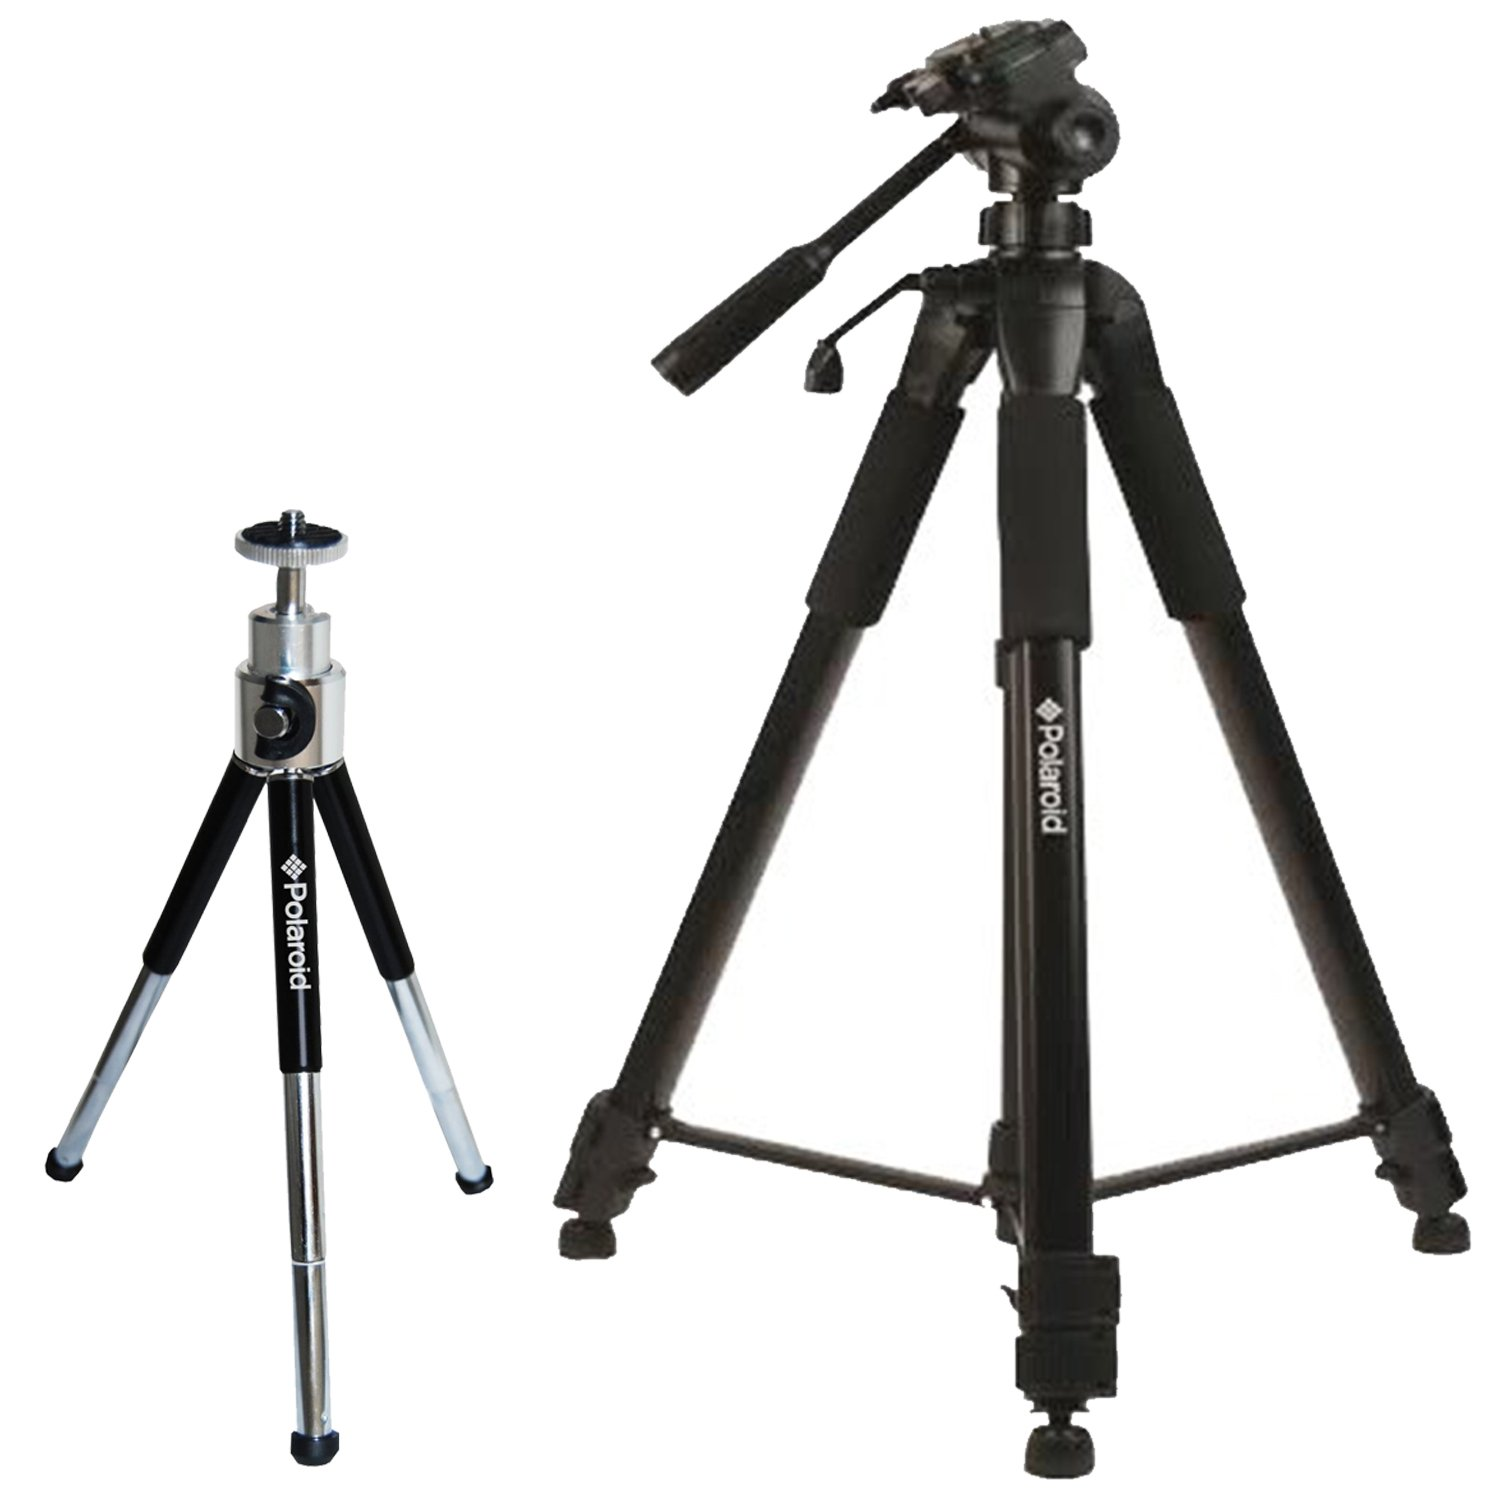 Polaroid 72-inch Photo / Video ProPod Tripod Includes Deluxe Tripod Carrying Case + Additional Quick Release Plate For Digital Cameras & Camcorders and Polaroid 8'' Heavy Duty Mini Tripod With Pan Head